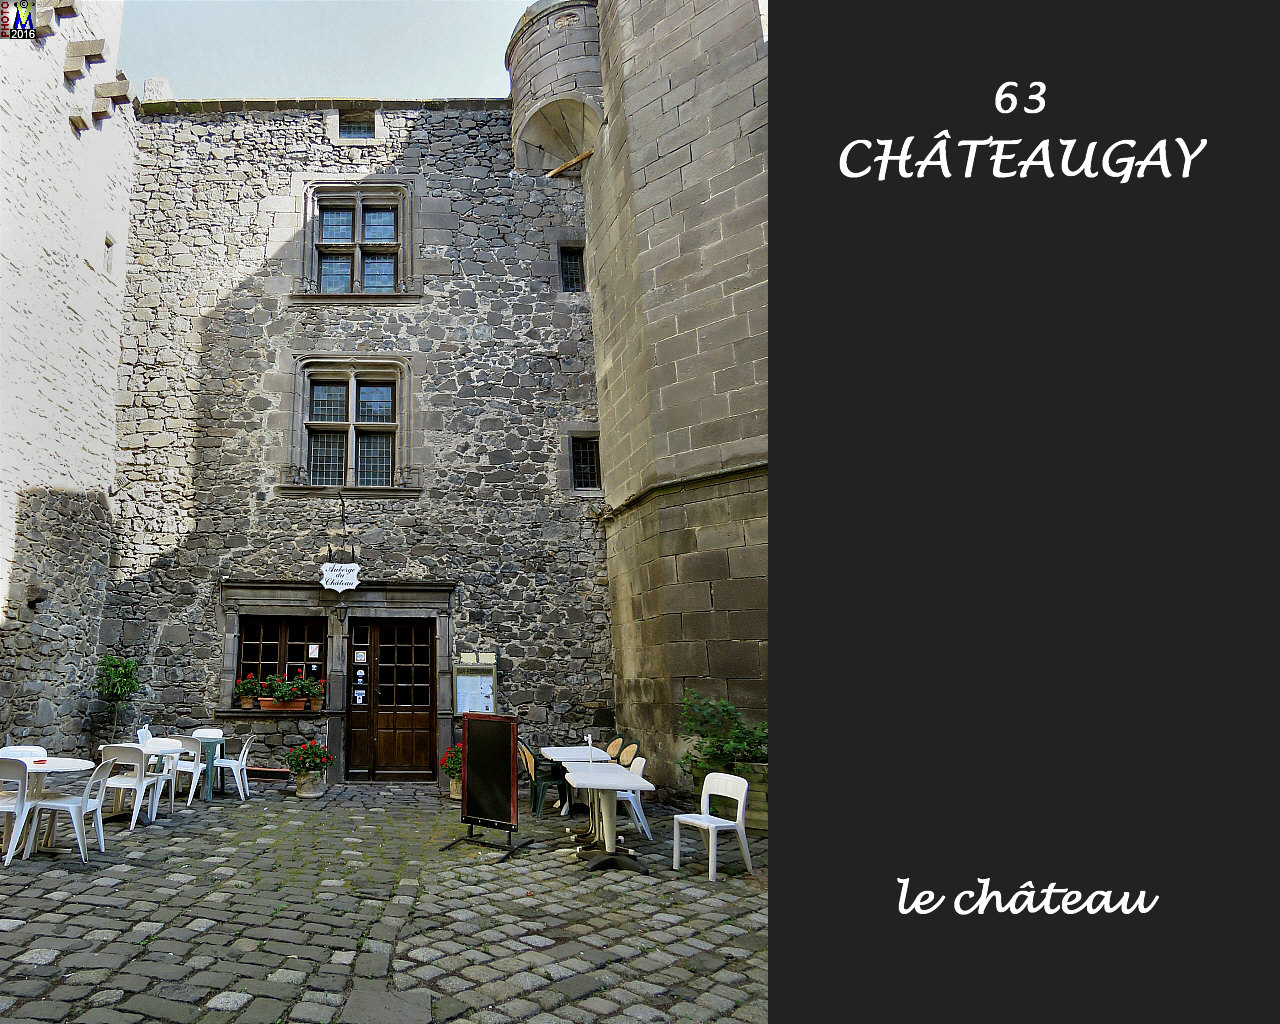 63CHATEAUGAY_chateau_112.jpg